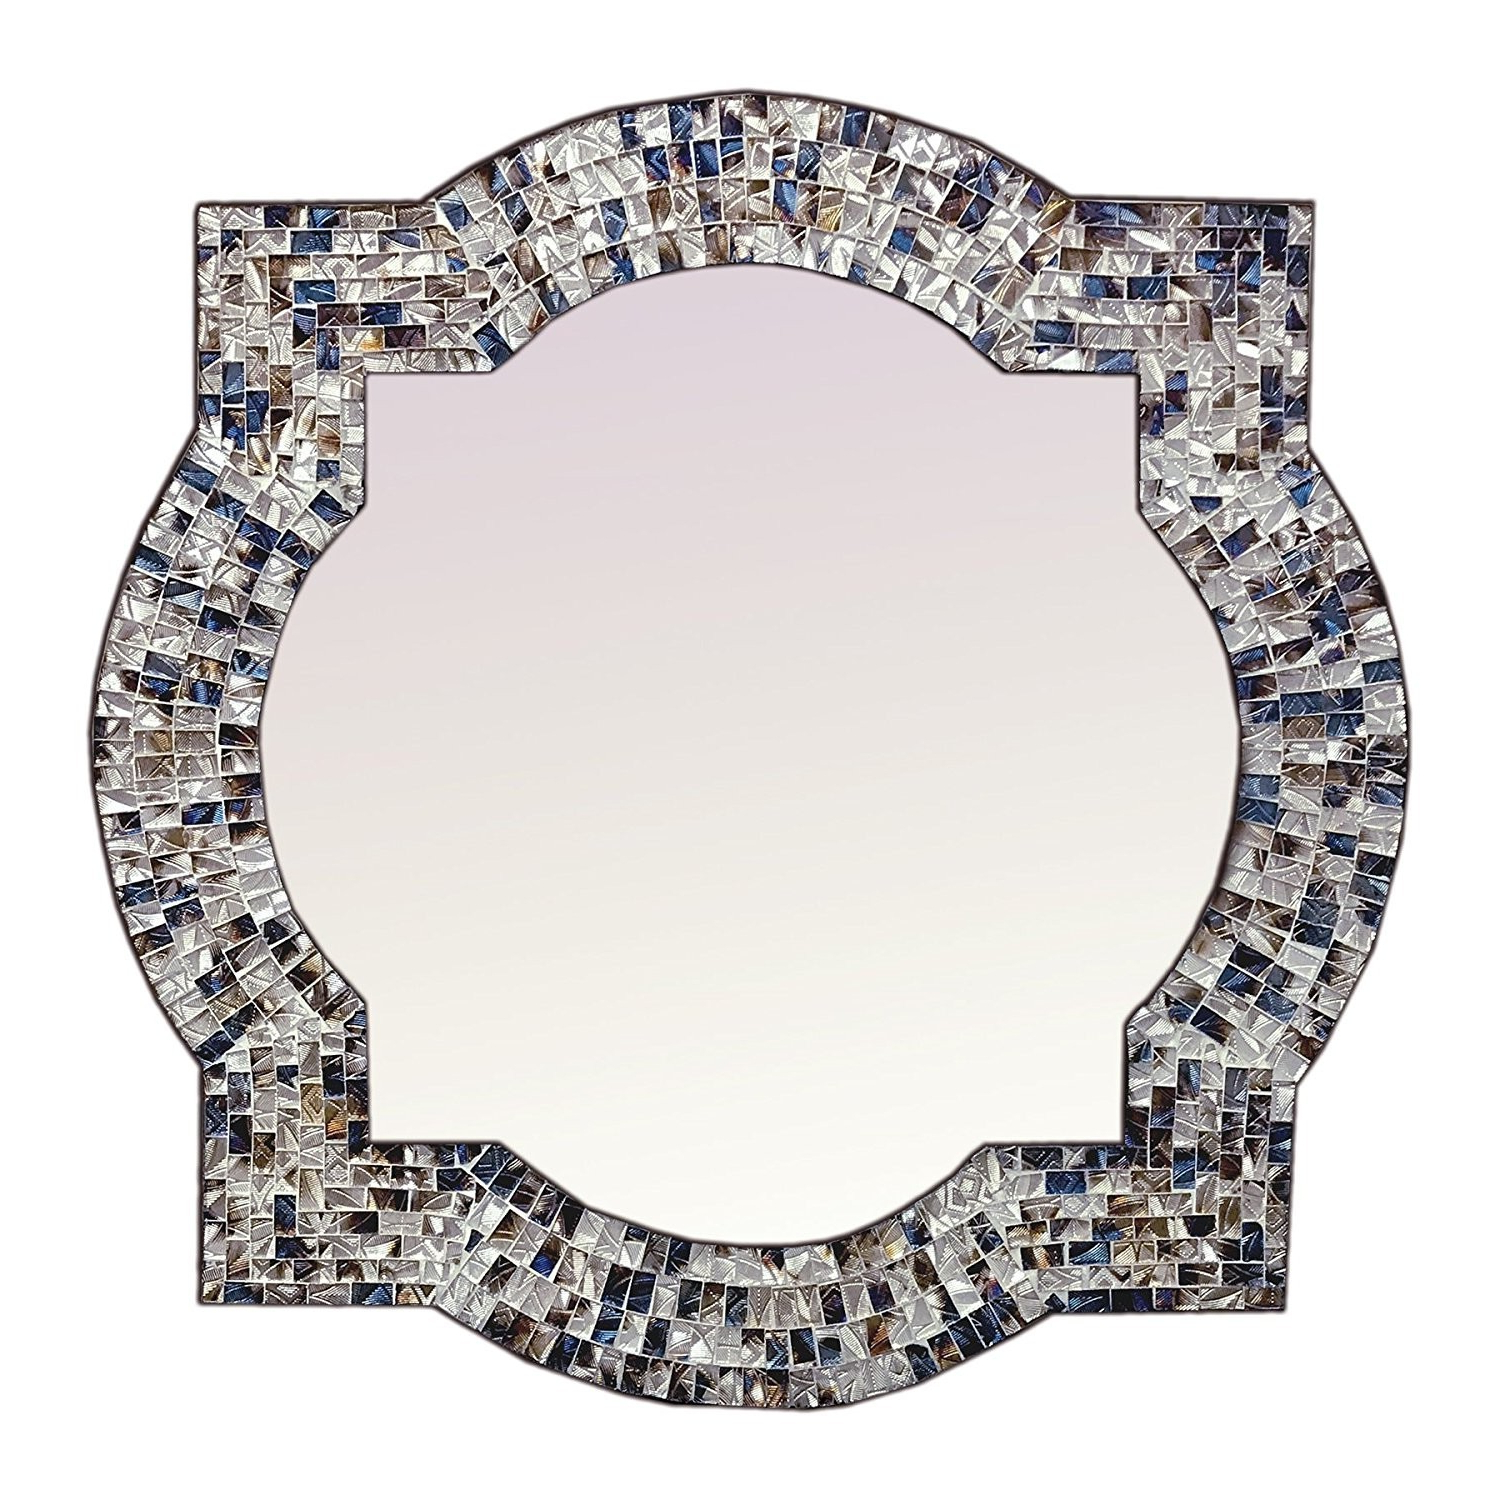 """Widely Used Mosaic Wall Mirrors For Andalusian Quatrefoil Mirror, Lindaraja Designer Mosaic Glass Framed Wall Mirror, 24""""x24"""" Colorful Wall Mirror (Multi Silver) (Gallery 17 of 20)"""